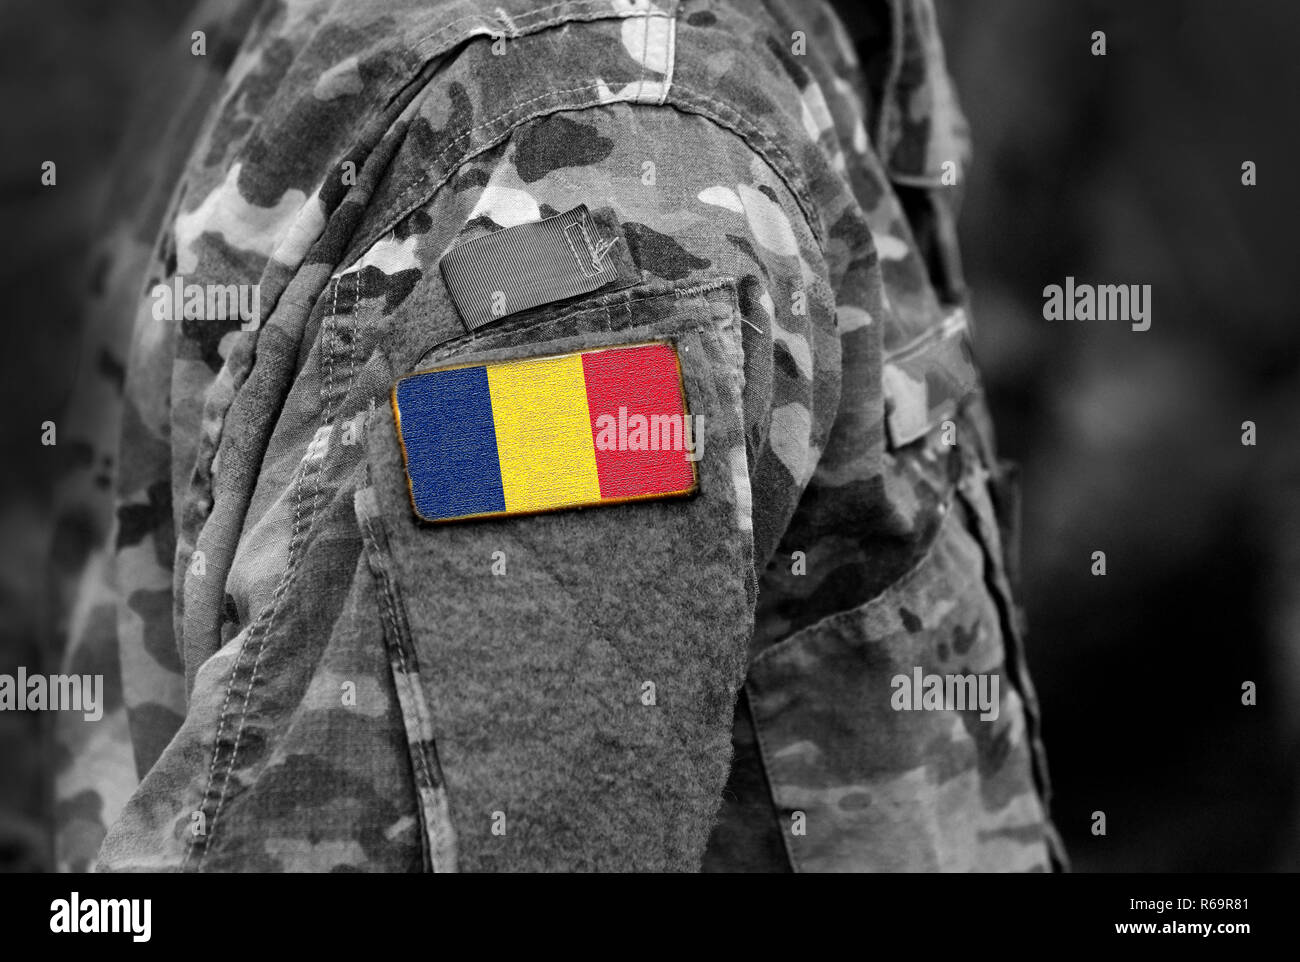 Flag of Chad on soldiers arm. Army, troops, military, Africa (collage), - Stock Image